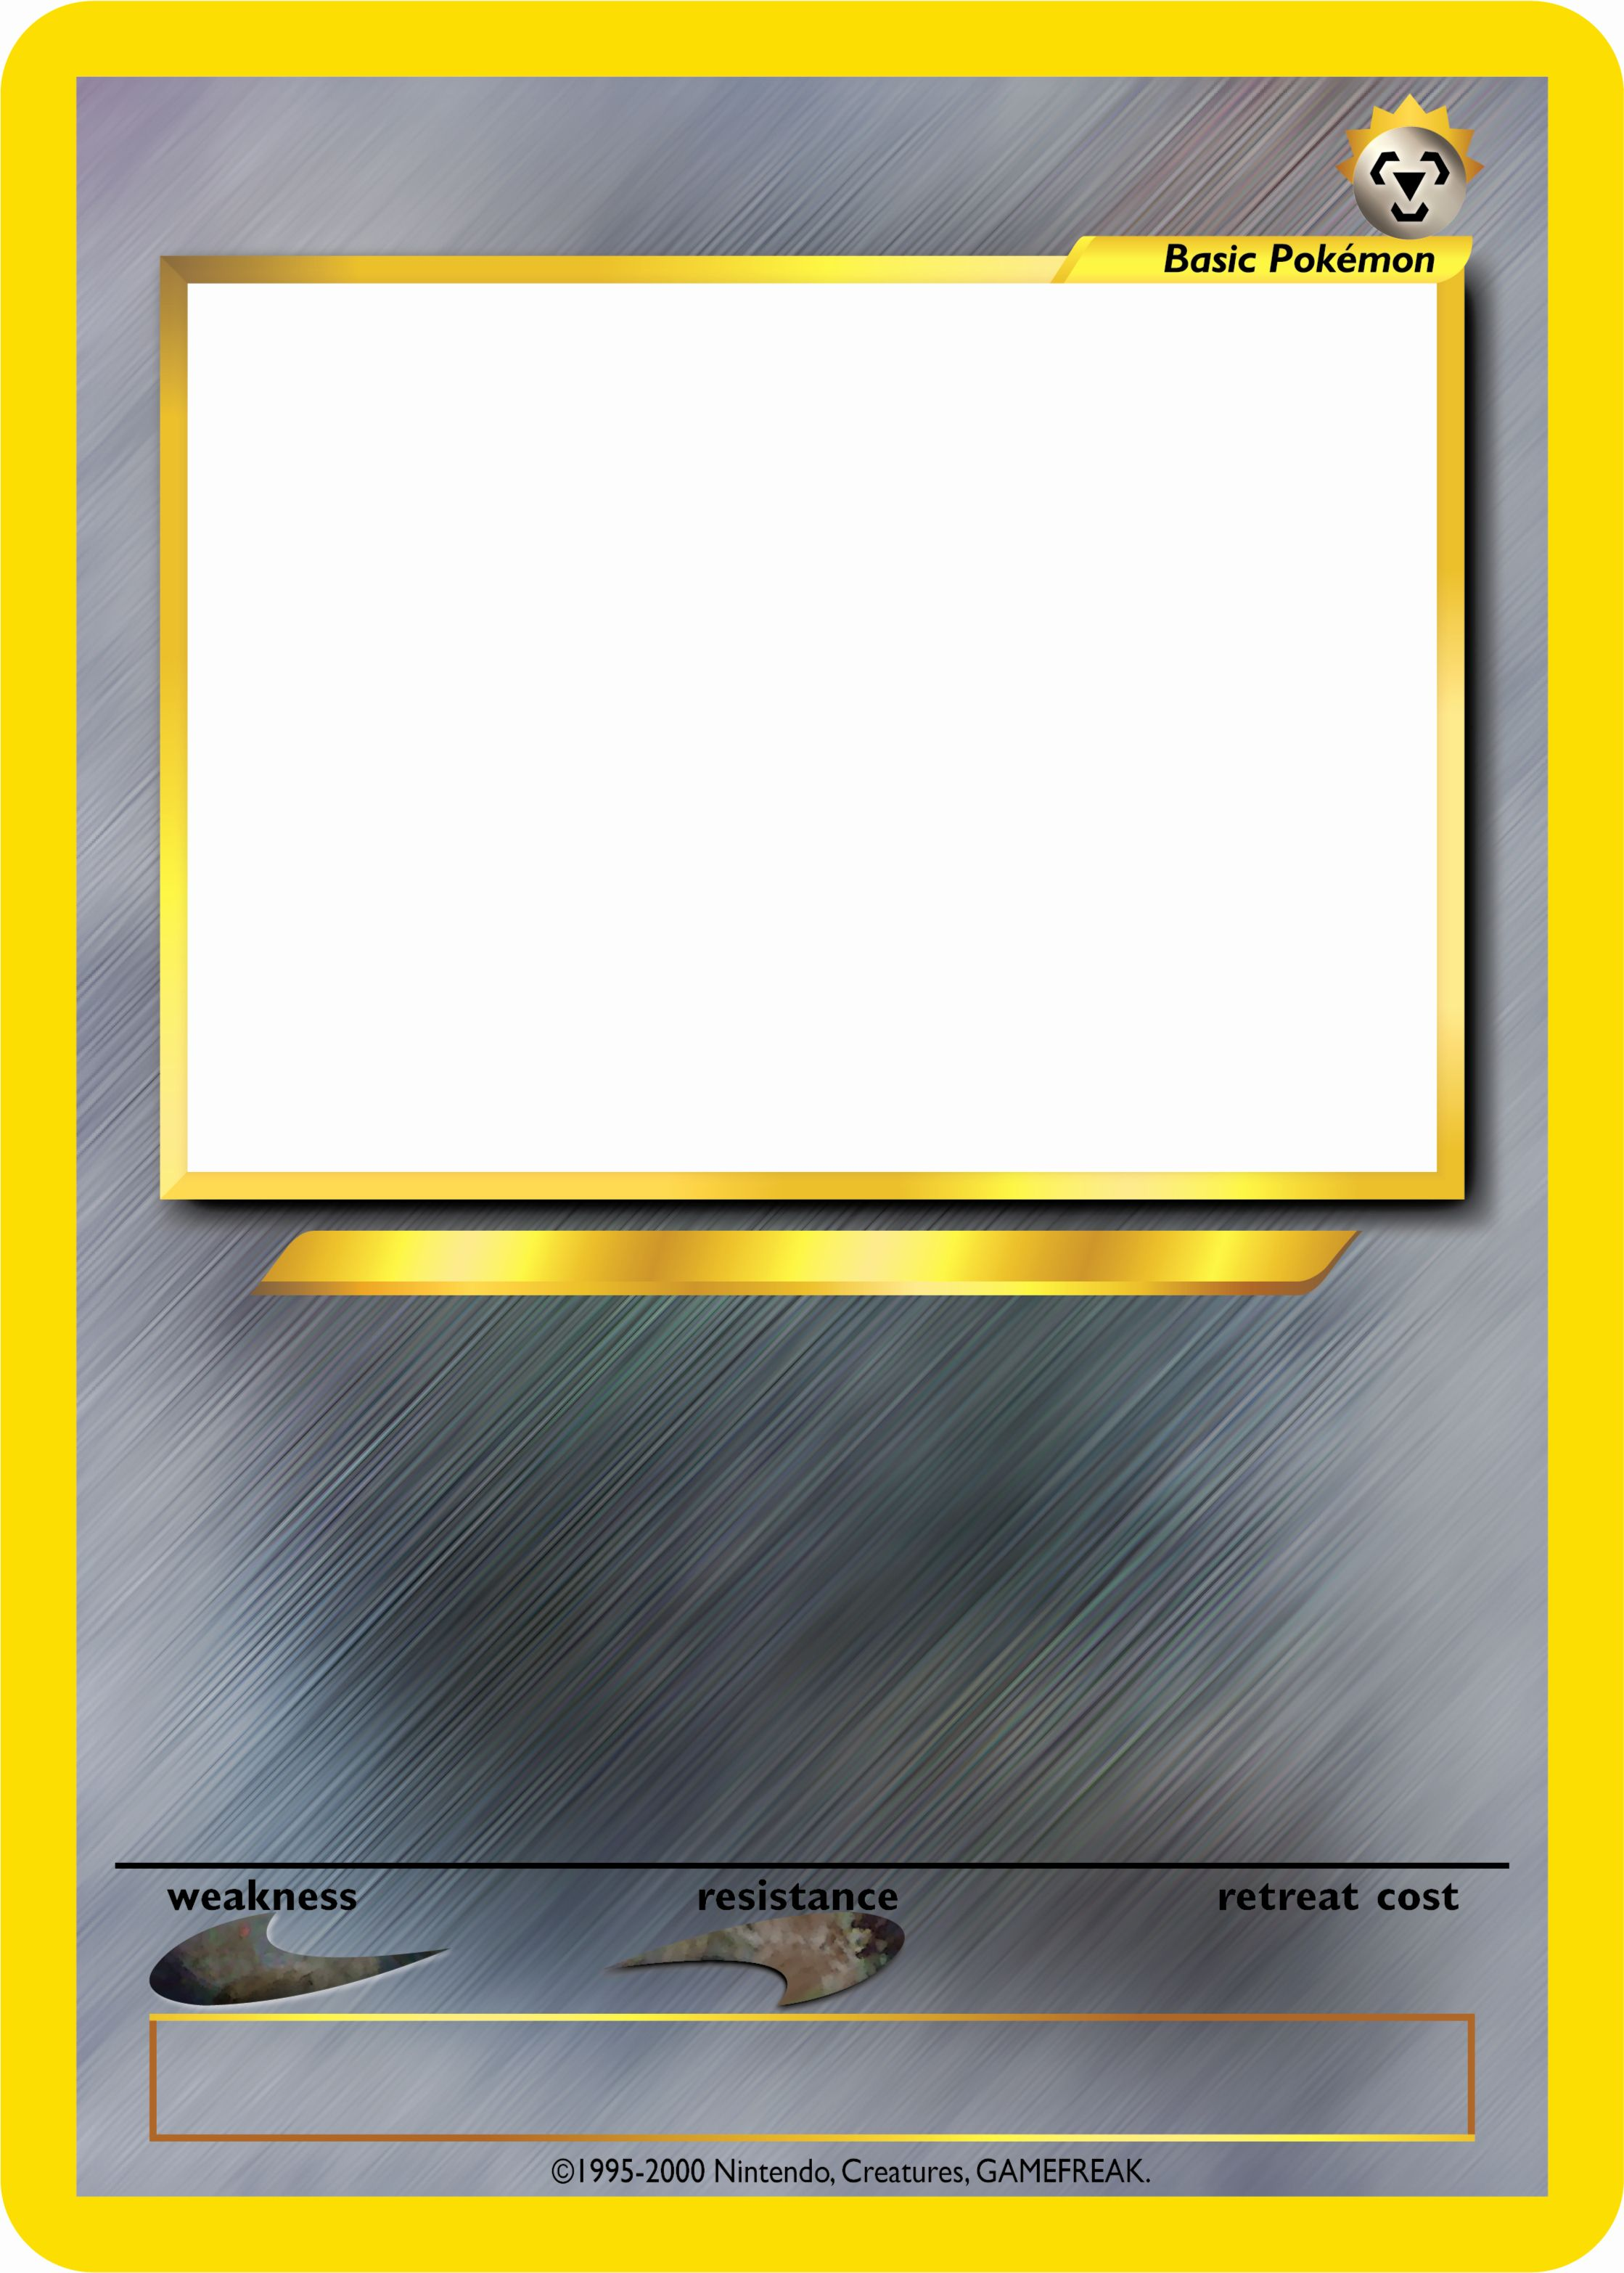 Blank Trading Card Template Inspirational Pokemon Tcg Blanks Neo Jumbo Basic By Icycatelf On Trading Card Template Baseball Card Template Pokemon Card Template